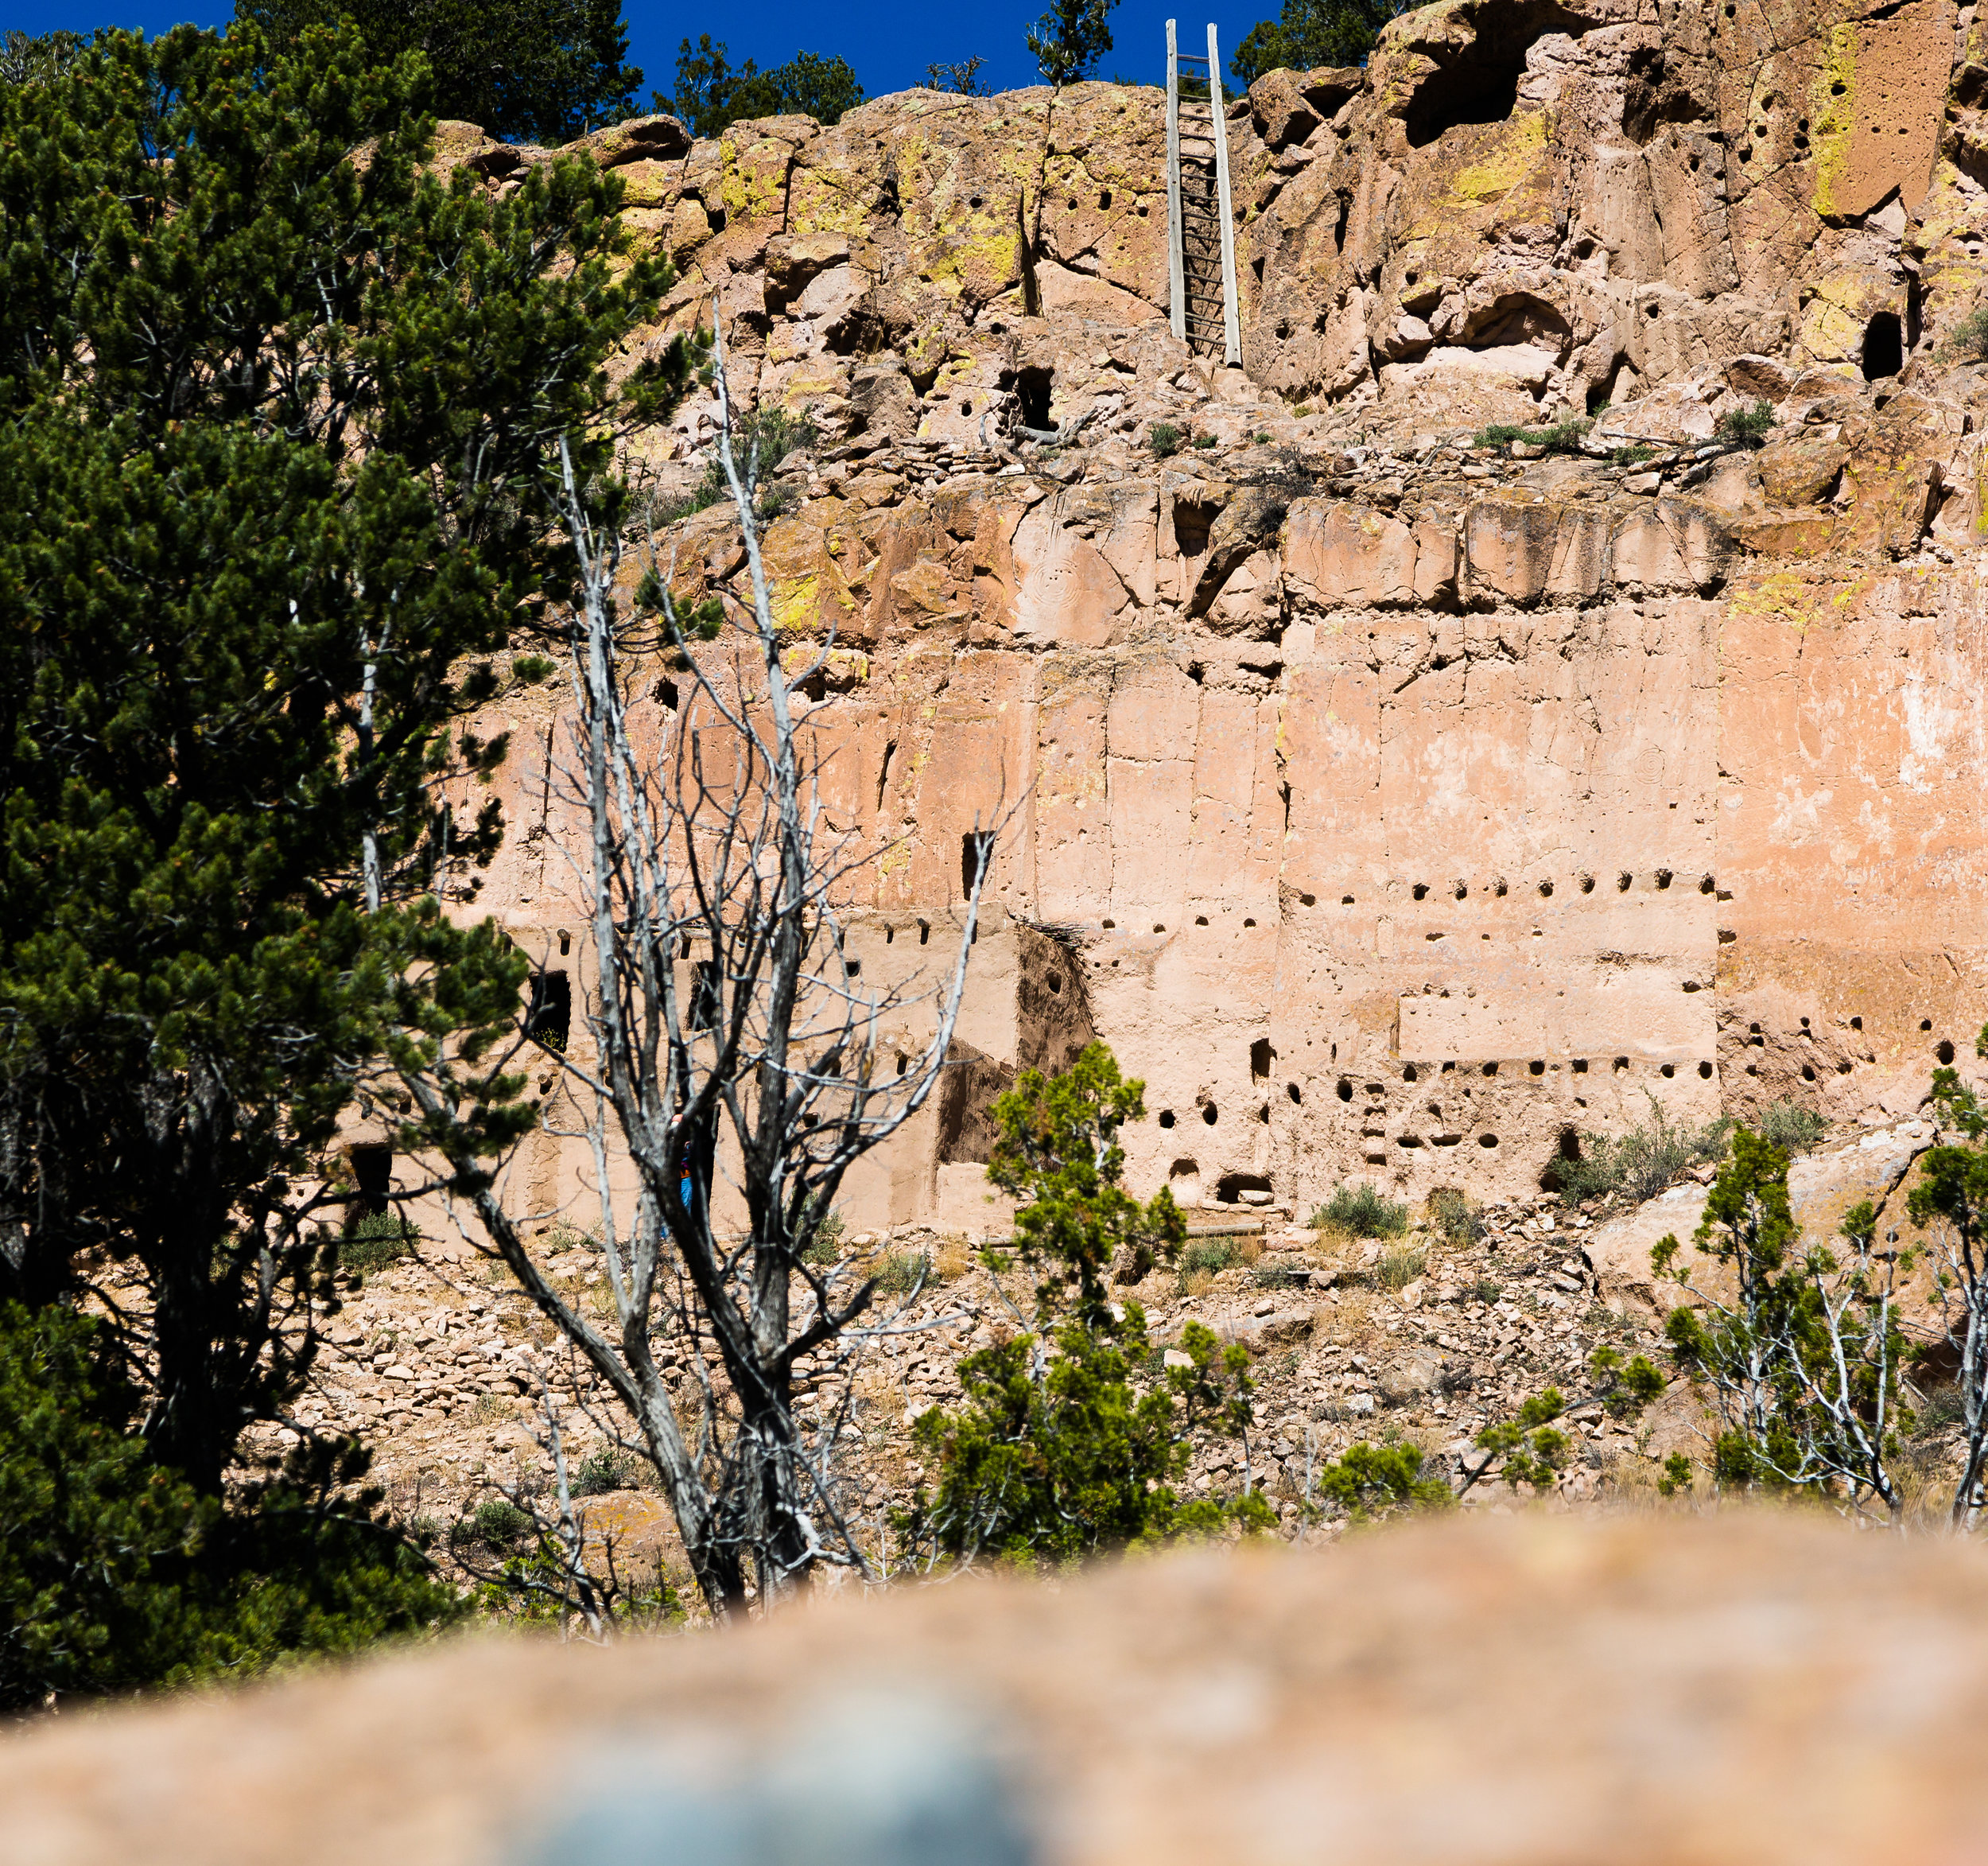 The cliff dwellings and caves are accessible via a 1.5 mile trail that spans the cliff face, while additional ladders and carved steps lead to the mesa top village above. These trails are only accessible with a guide.